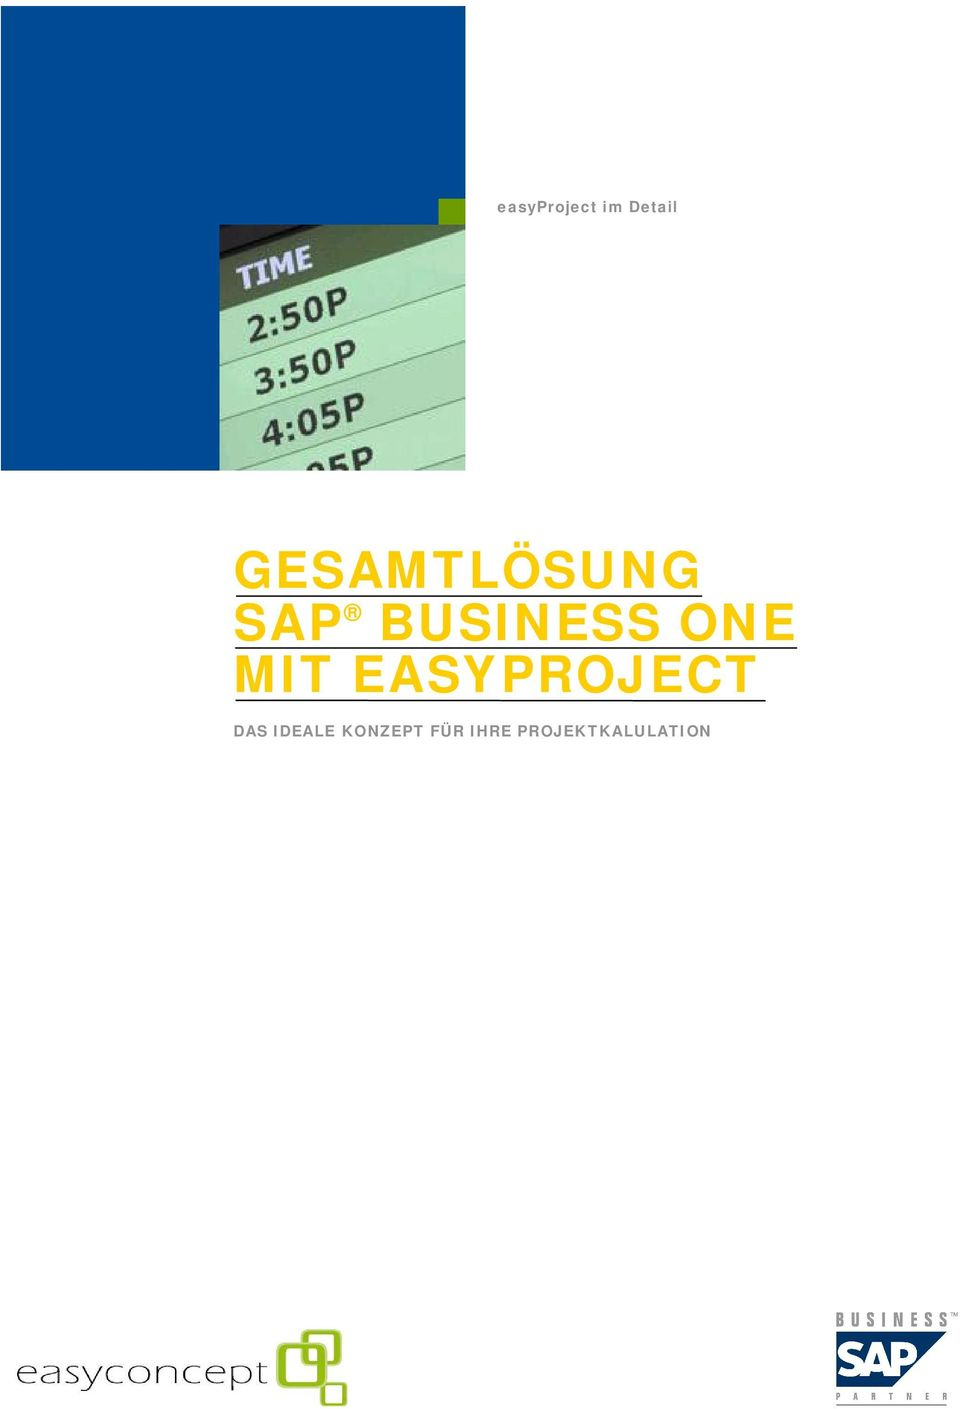 ONE MIT EASYPROJECT DAS